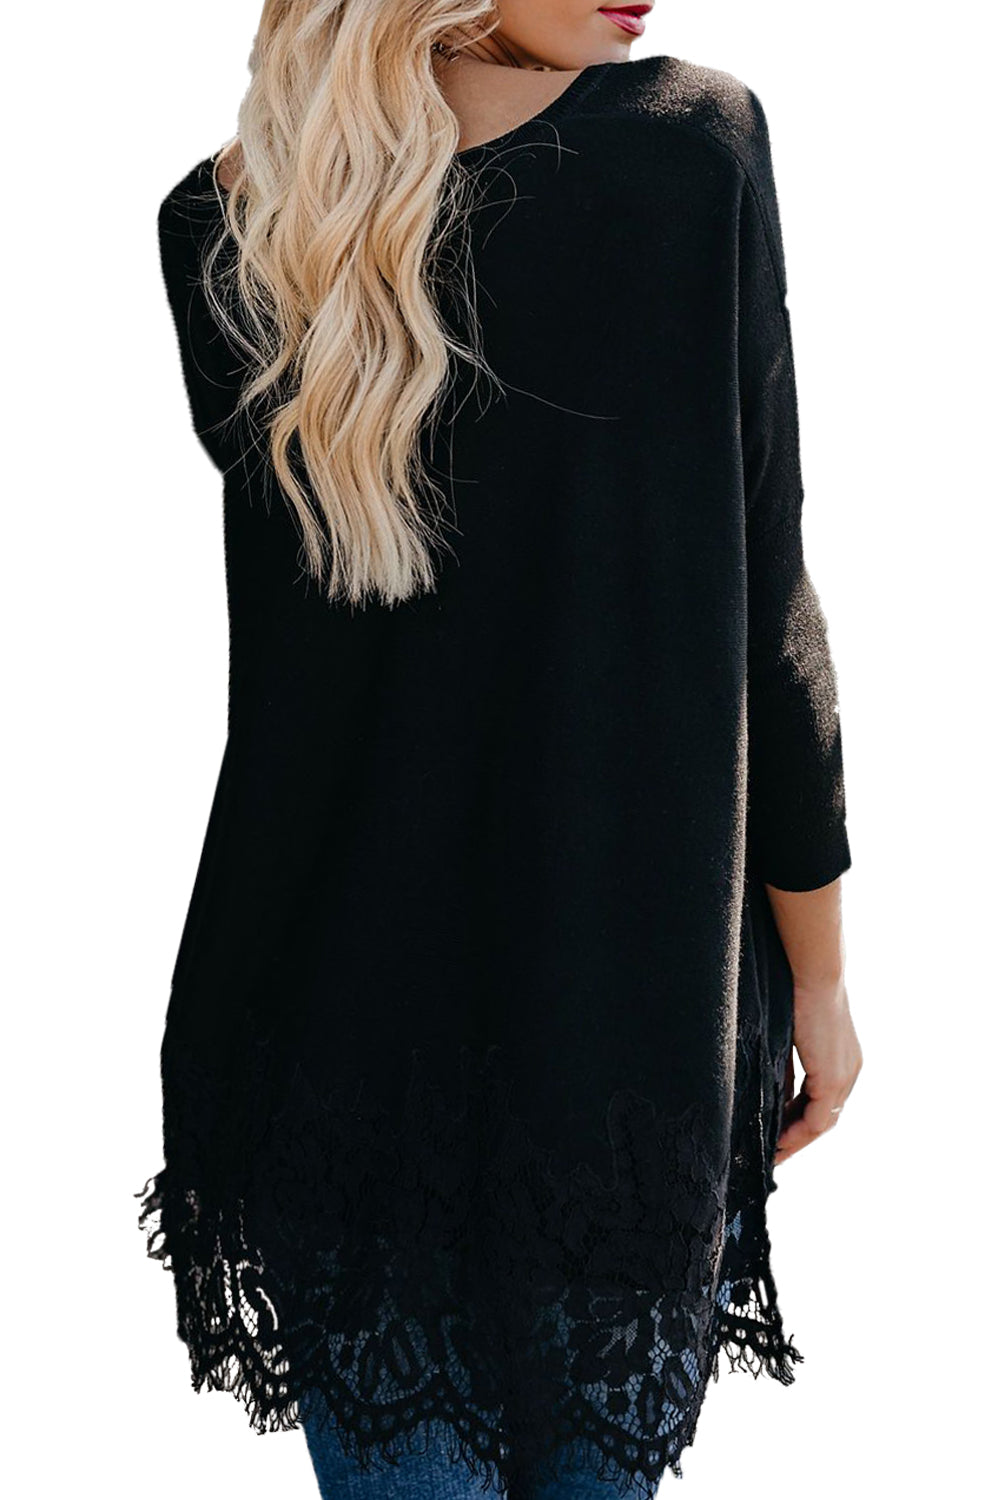 Black Waldorf Lace Contrast Sweater